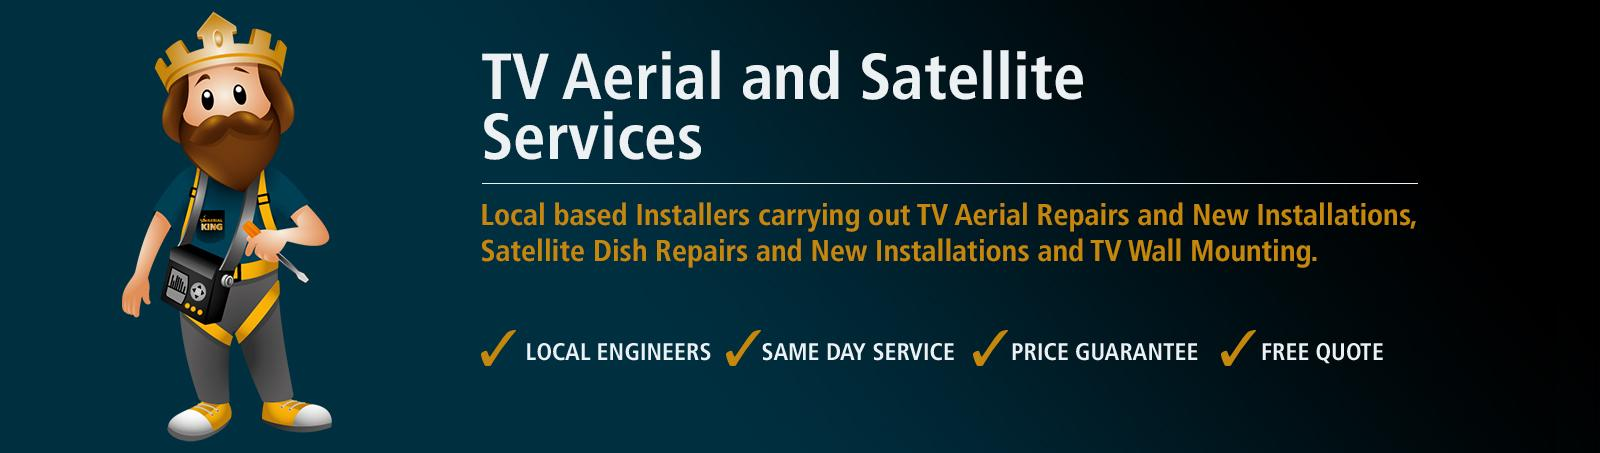 TV Aerial Services SatFocus